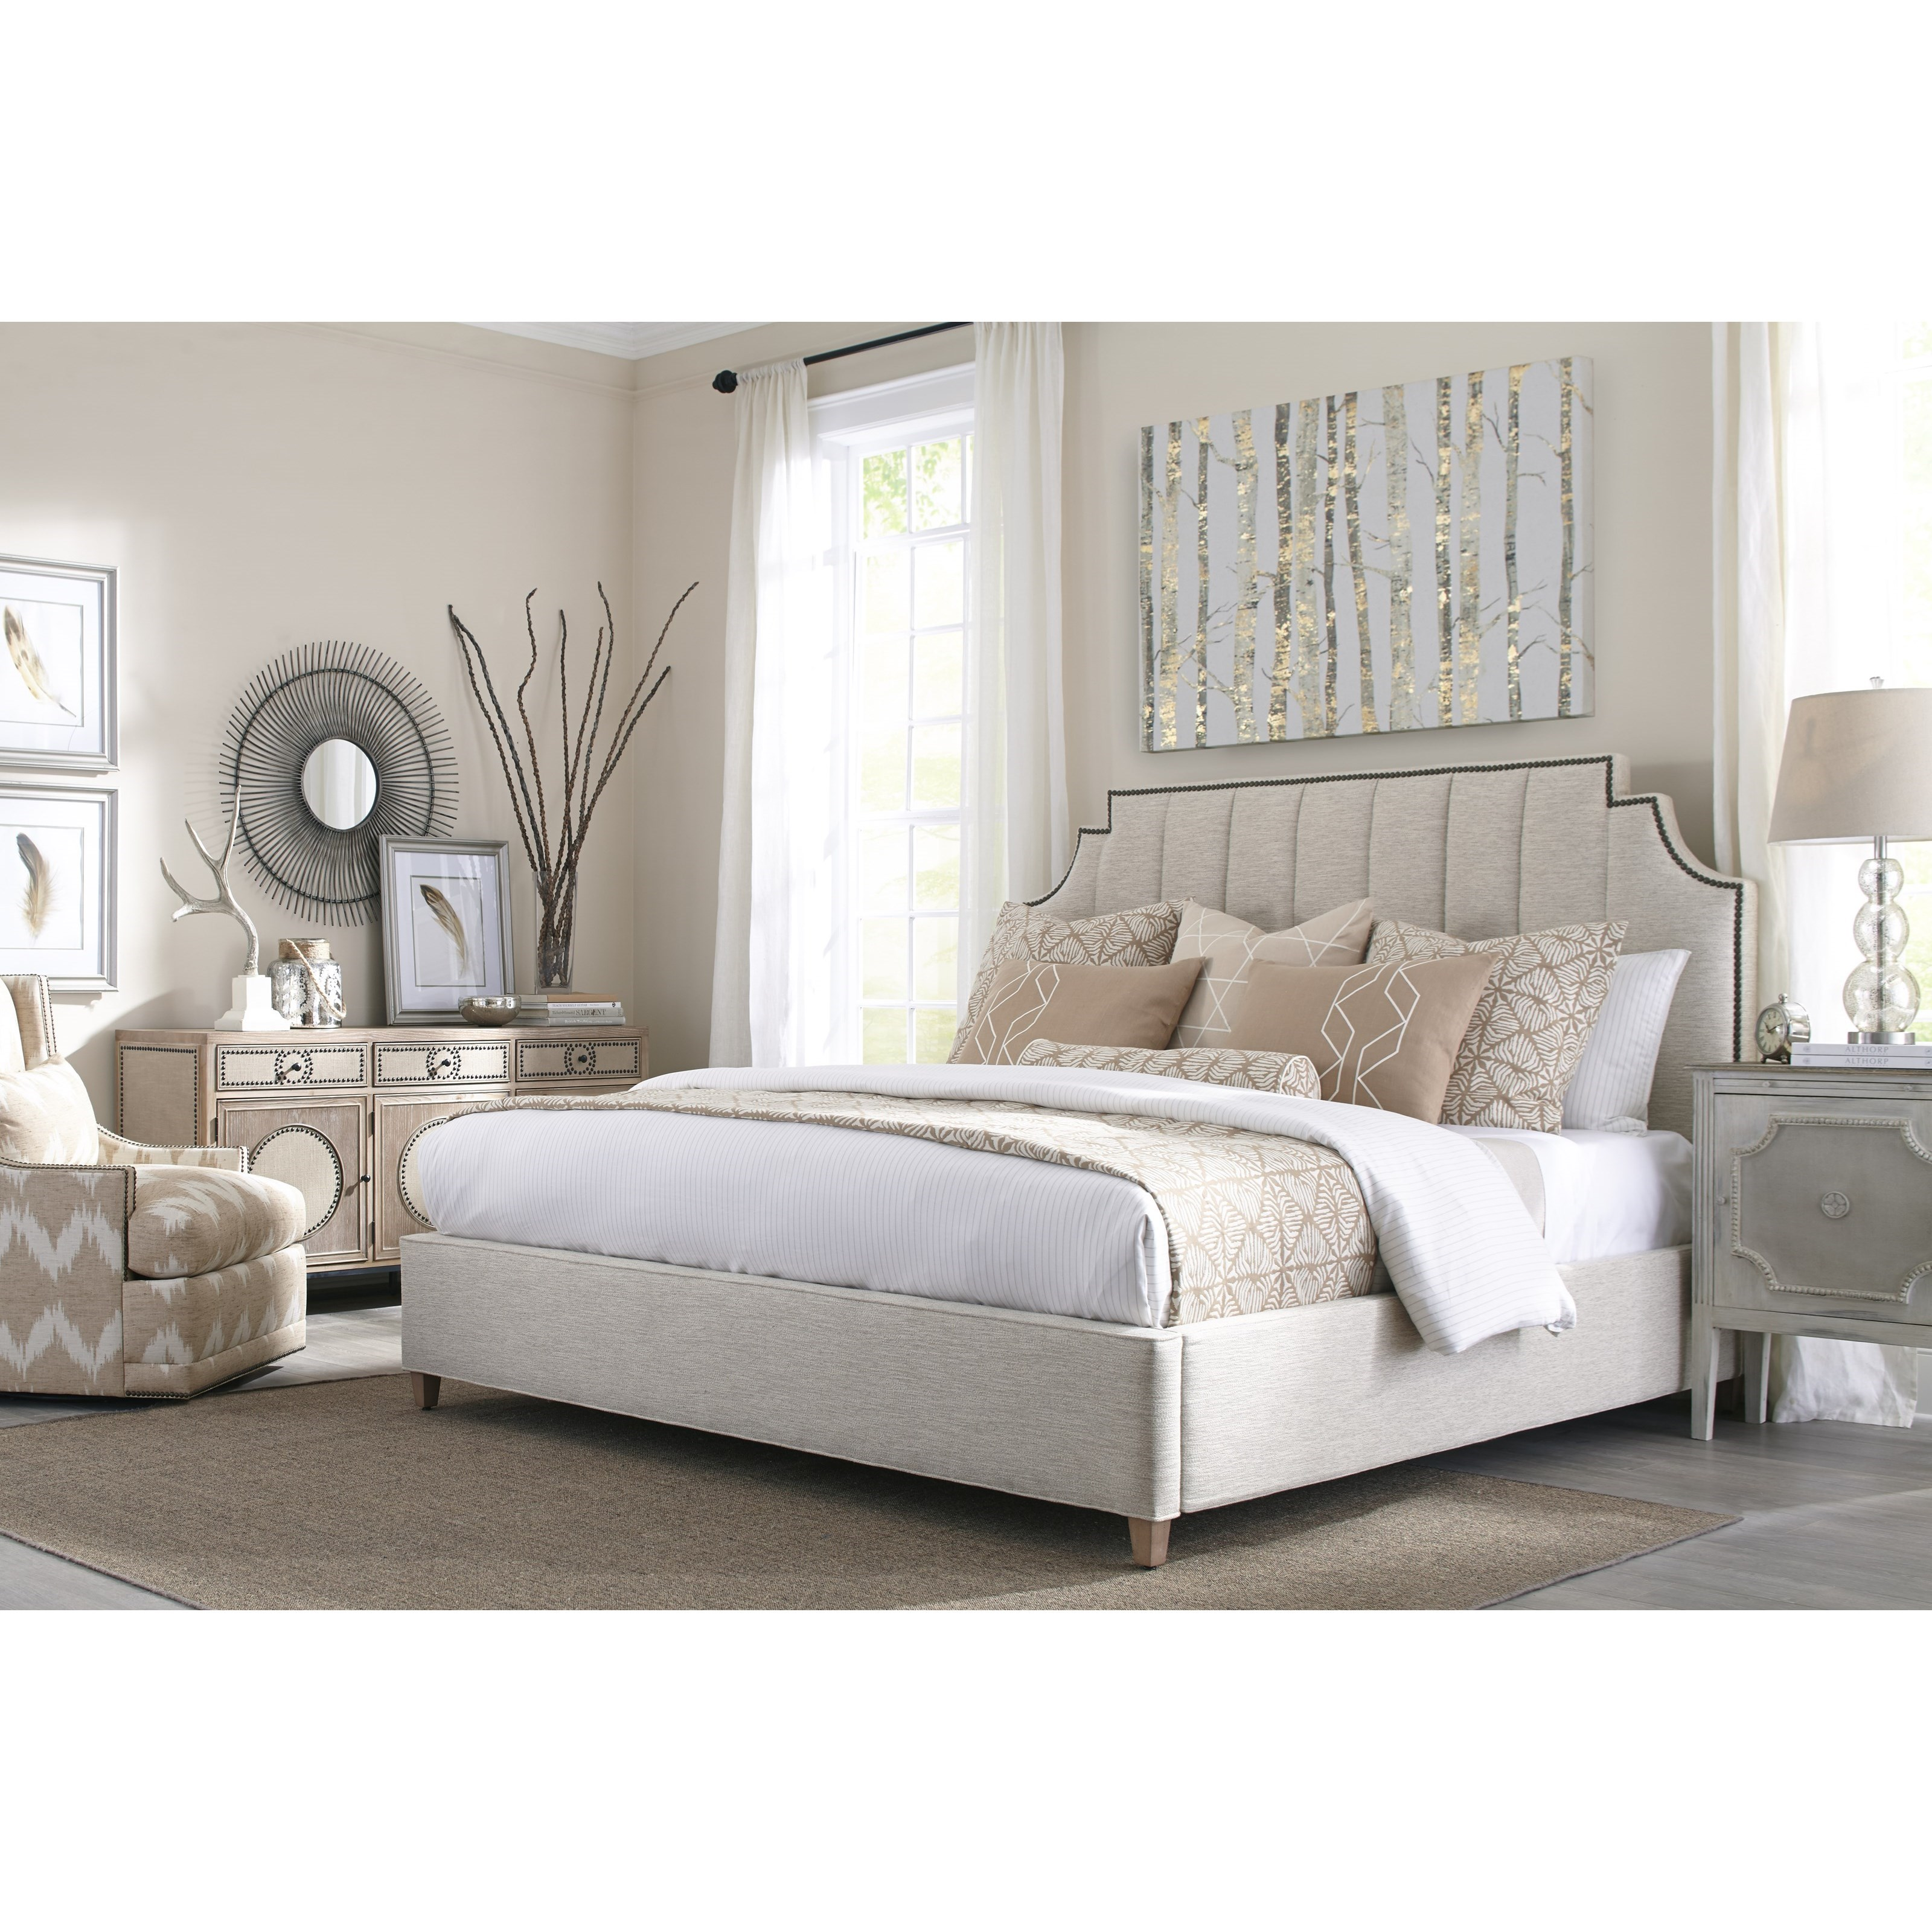 rowe my style beds lindley 60 upholstered bed